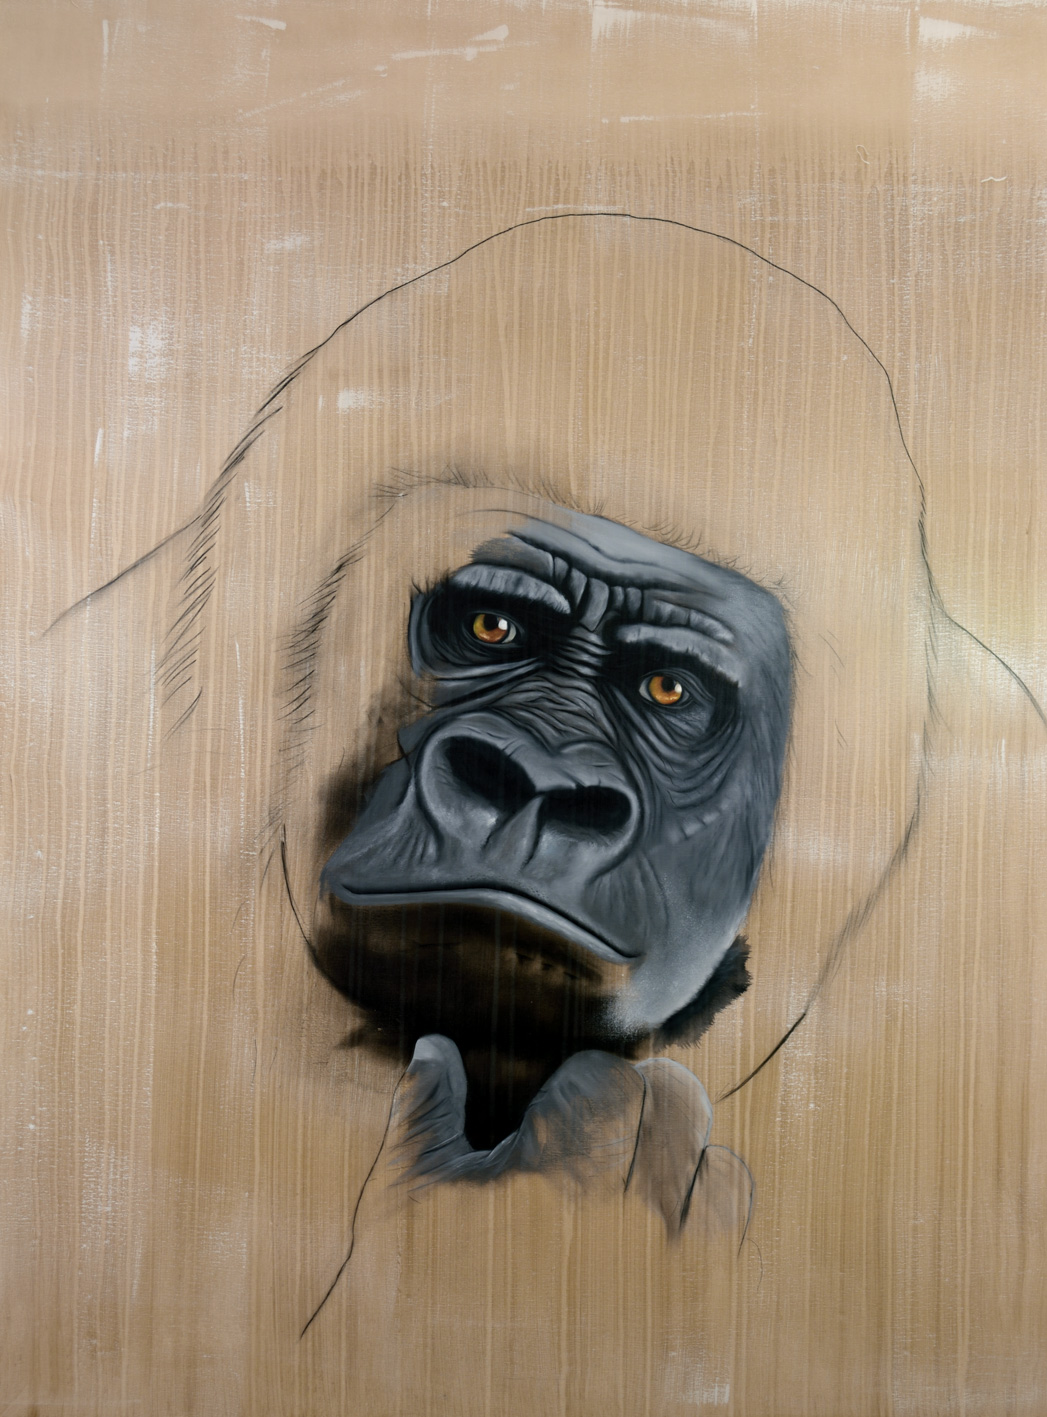 GORILLA-GORILLA gorilla-delete-threatened-endangered-extinction Thierry Bisch painter animals painting art decoration hotel design interior luxury nature biodiversity conservation